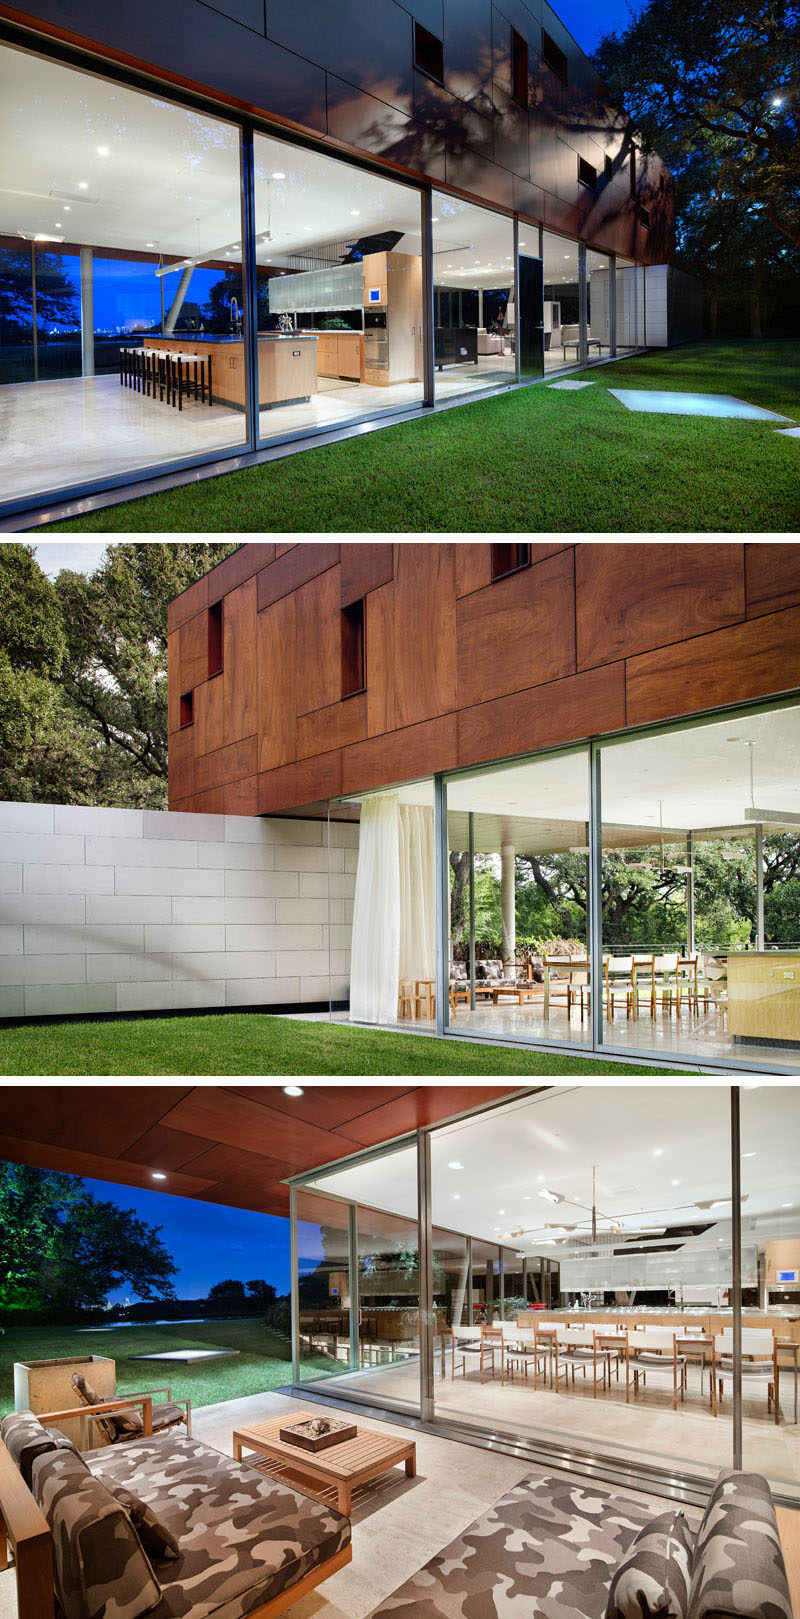 Glass walls surround the main living level of this home that features a covered outdoor patio with lounge.